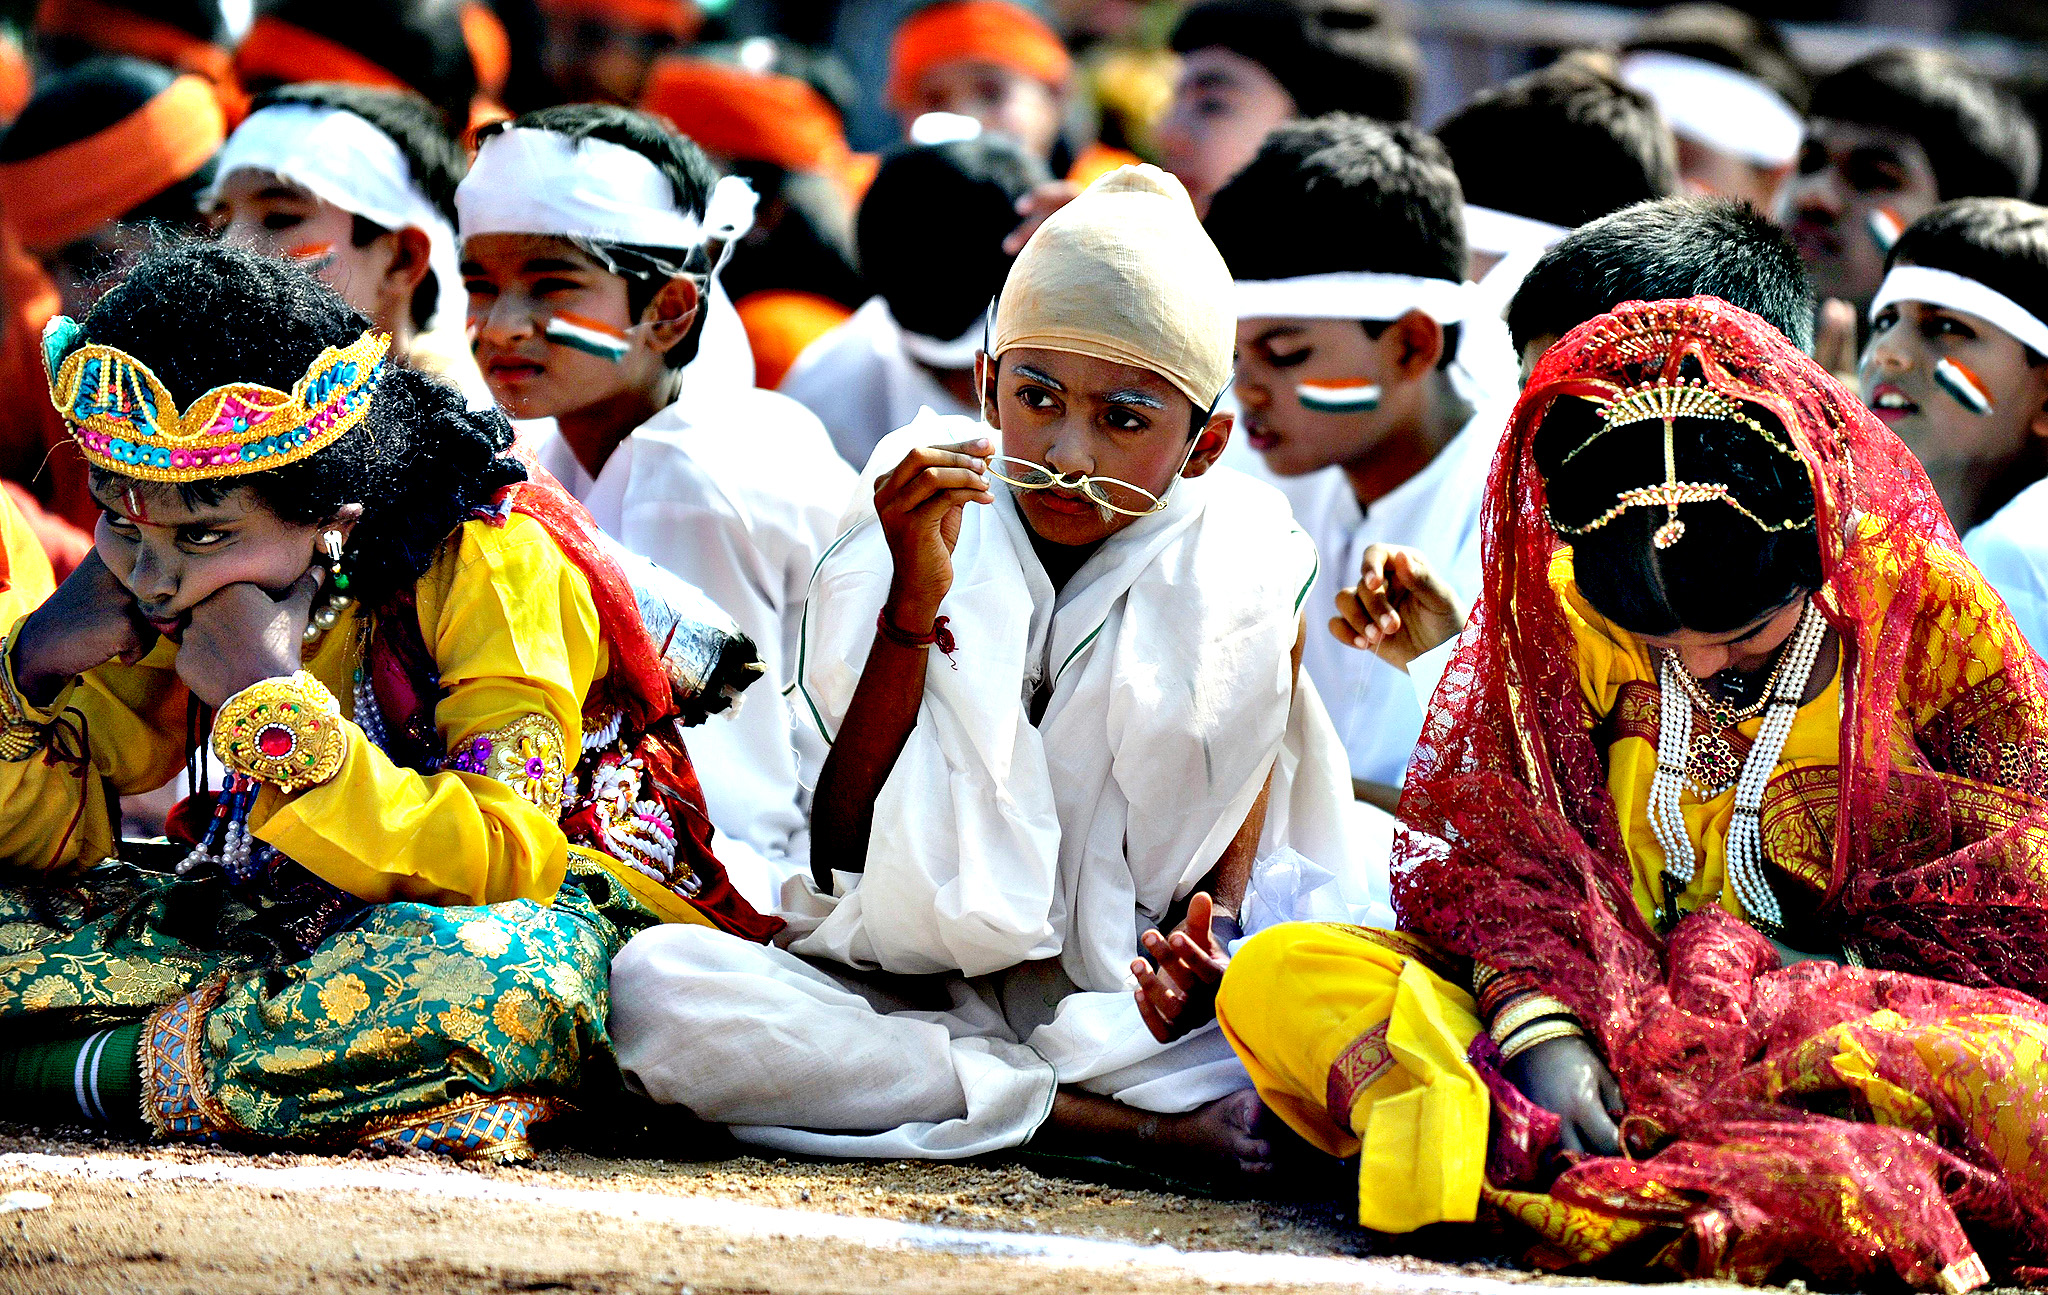 An Indian school student dressed as Mahatma Gandhi (C) sits with fellow students as they take part in state formation day celebrations in Hyderabad